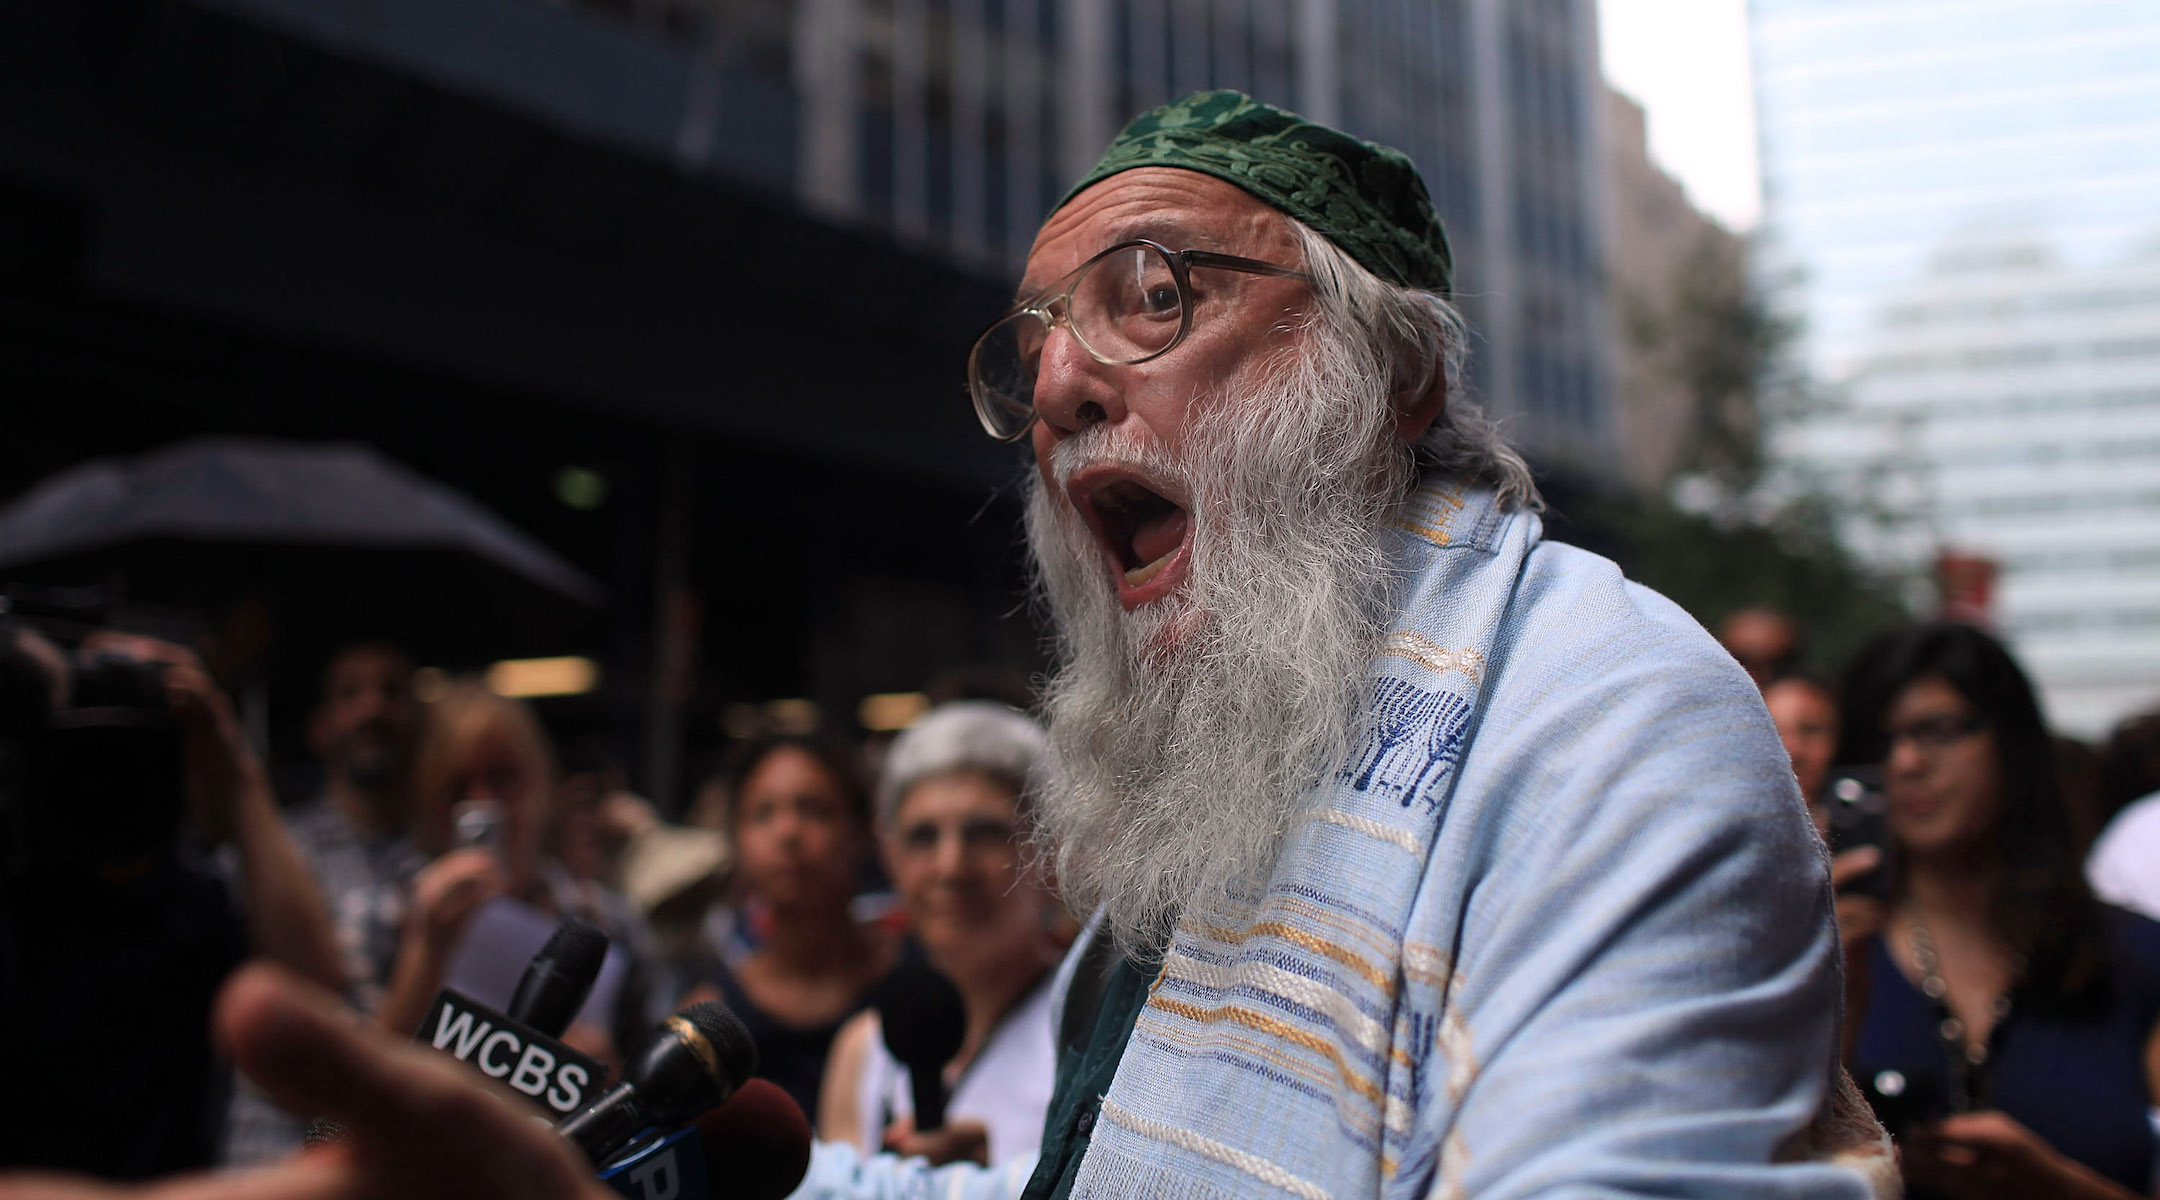 At 87, activist rabbi Arthur Waskow is still protesting — and still getting arrested